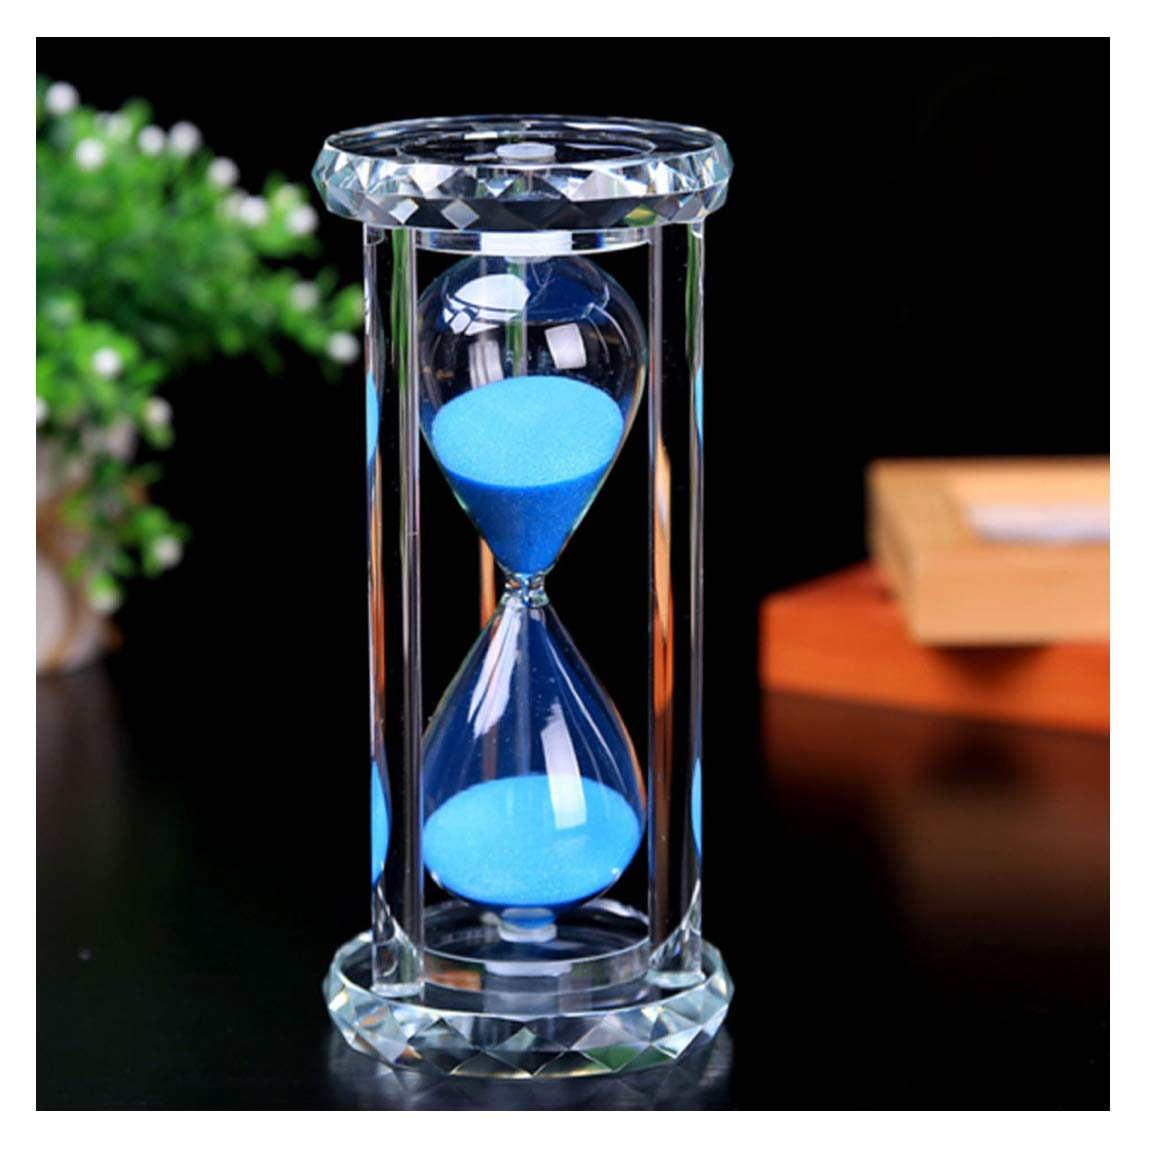 Purple,Crystal,30 Minutes SZAT Hourglass Sand Timer Clock Romantic Mantel Office Desk Coffee Table Book Shelf Curio Cabinet Christmas Birthday Present Gift Box Package